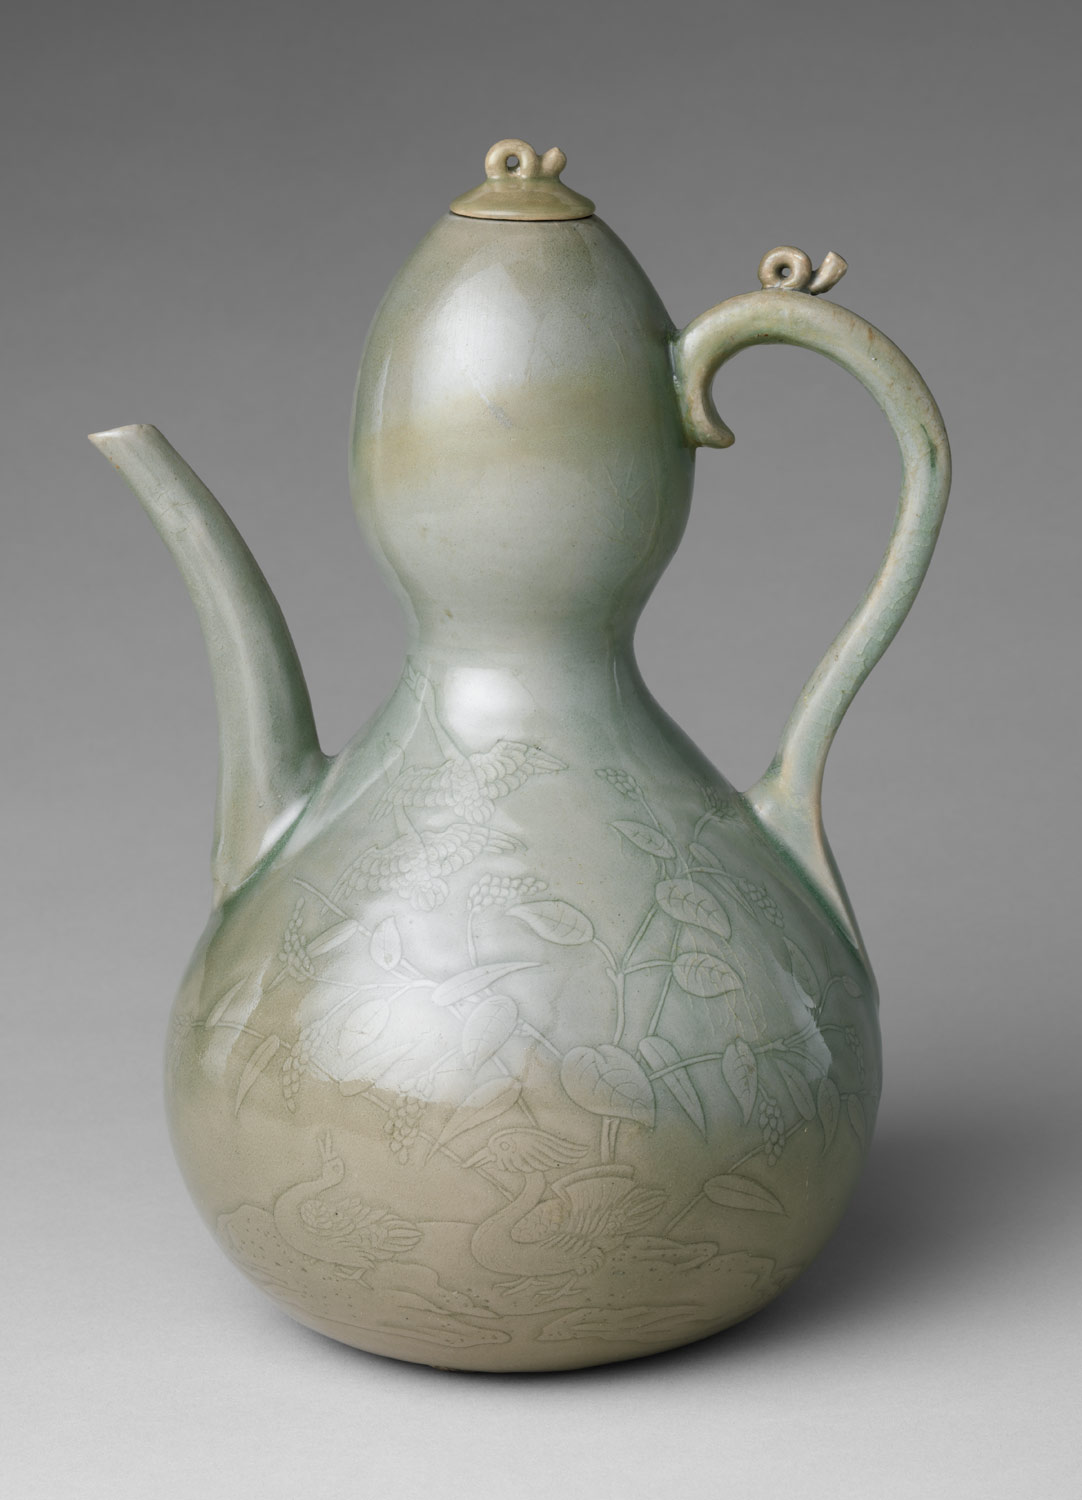 Gourd-shaped ewer with decoration of waterfowl and reeds